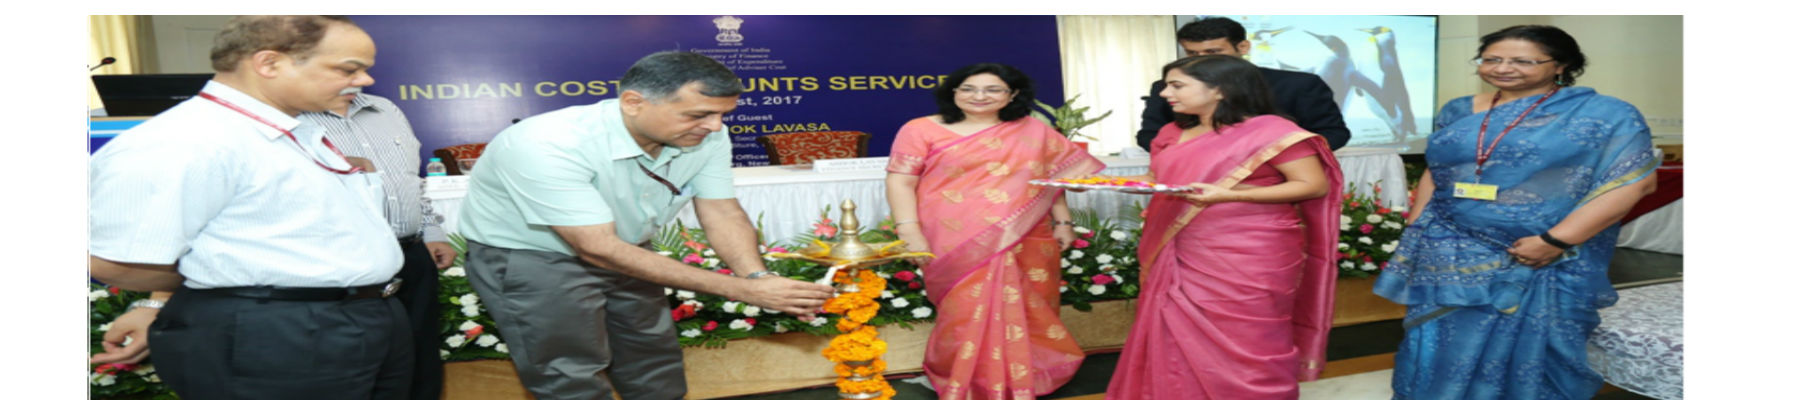 Shri Ashok Lavasa, Finance Secretary as the Chief Guest inaugurating the Indian Cost Accounts Service Day on 9th August 2017